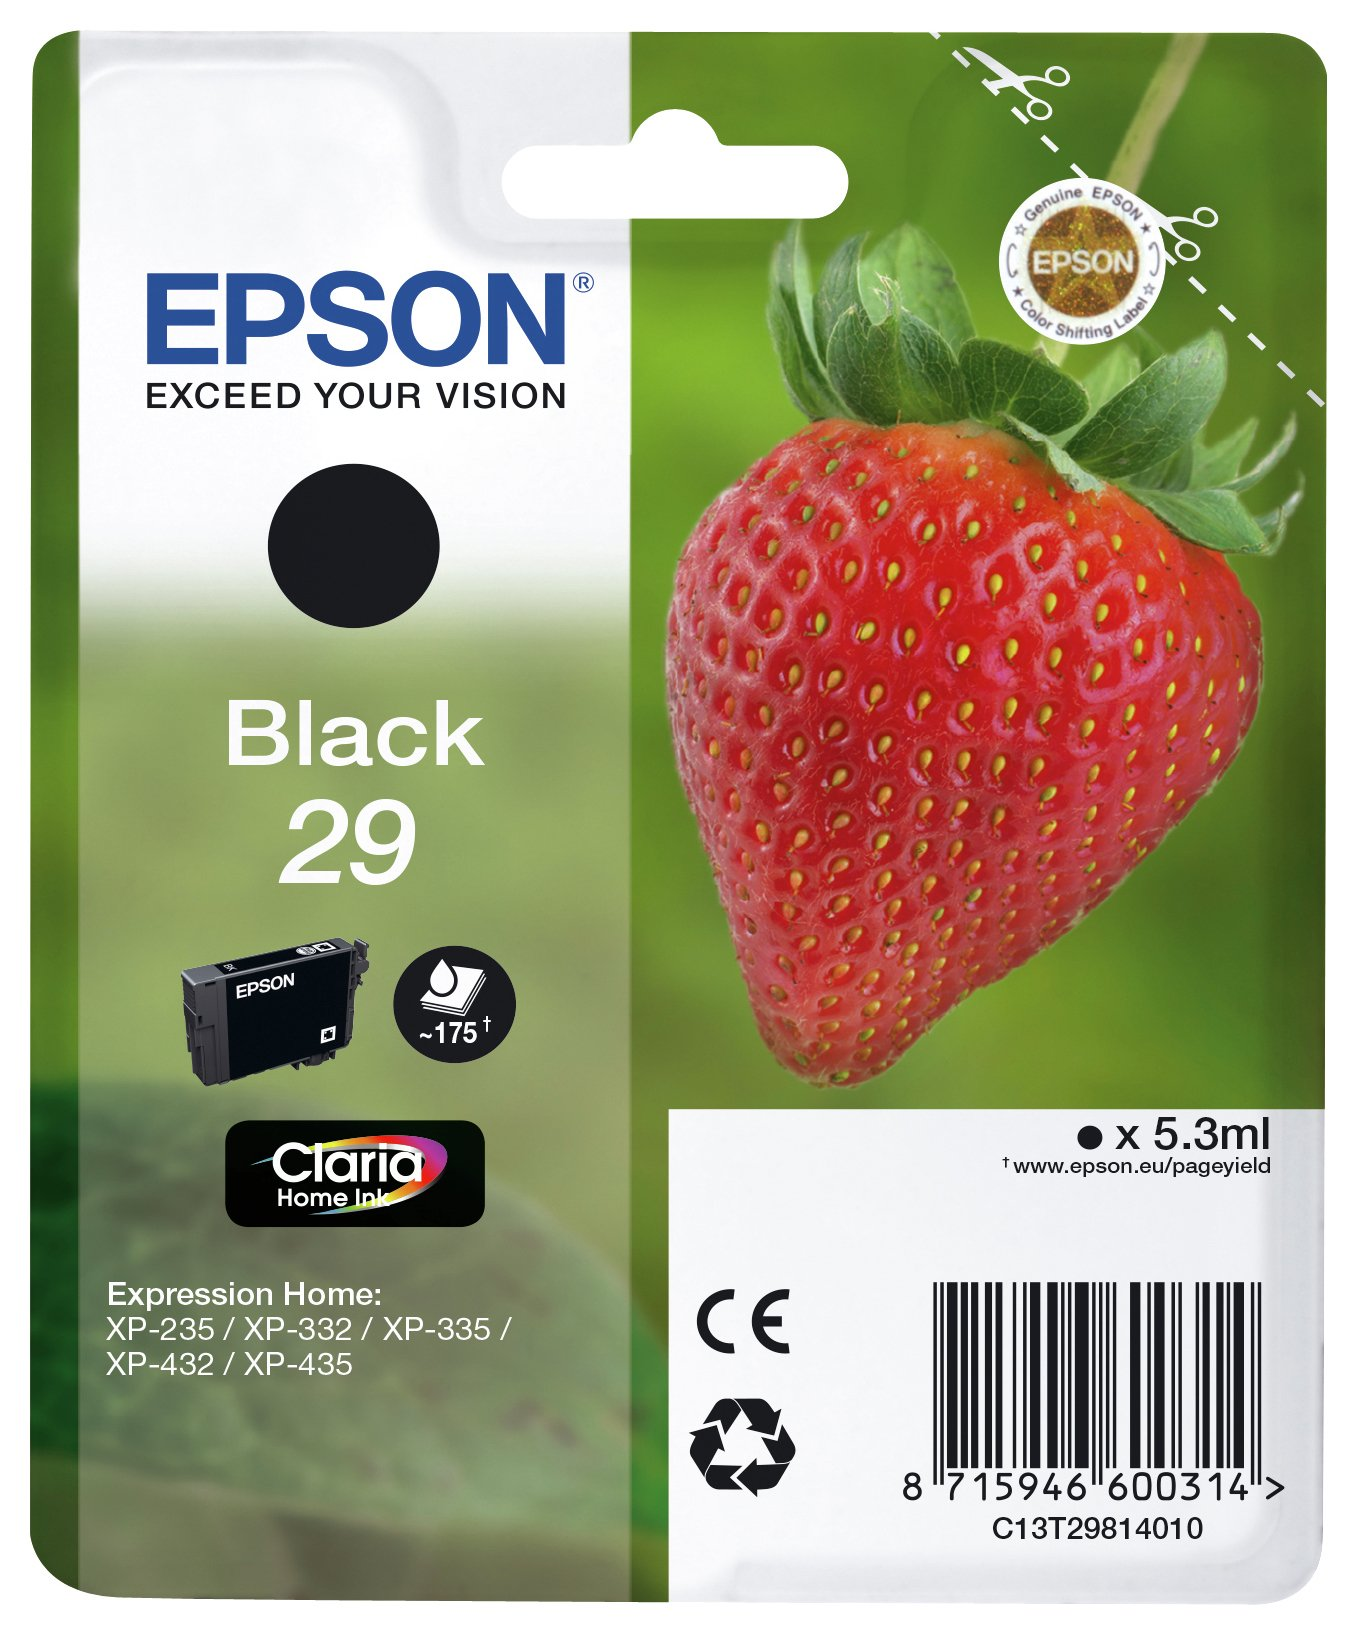 Epson Strawberry 29 Black Ink Cartridge from Epson